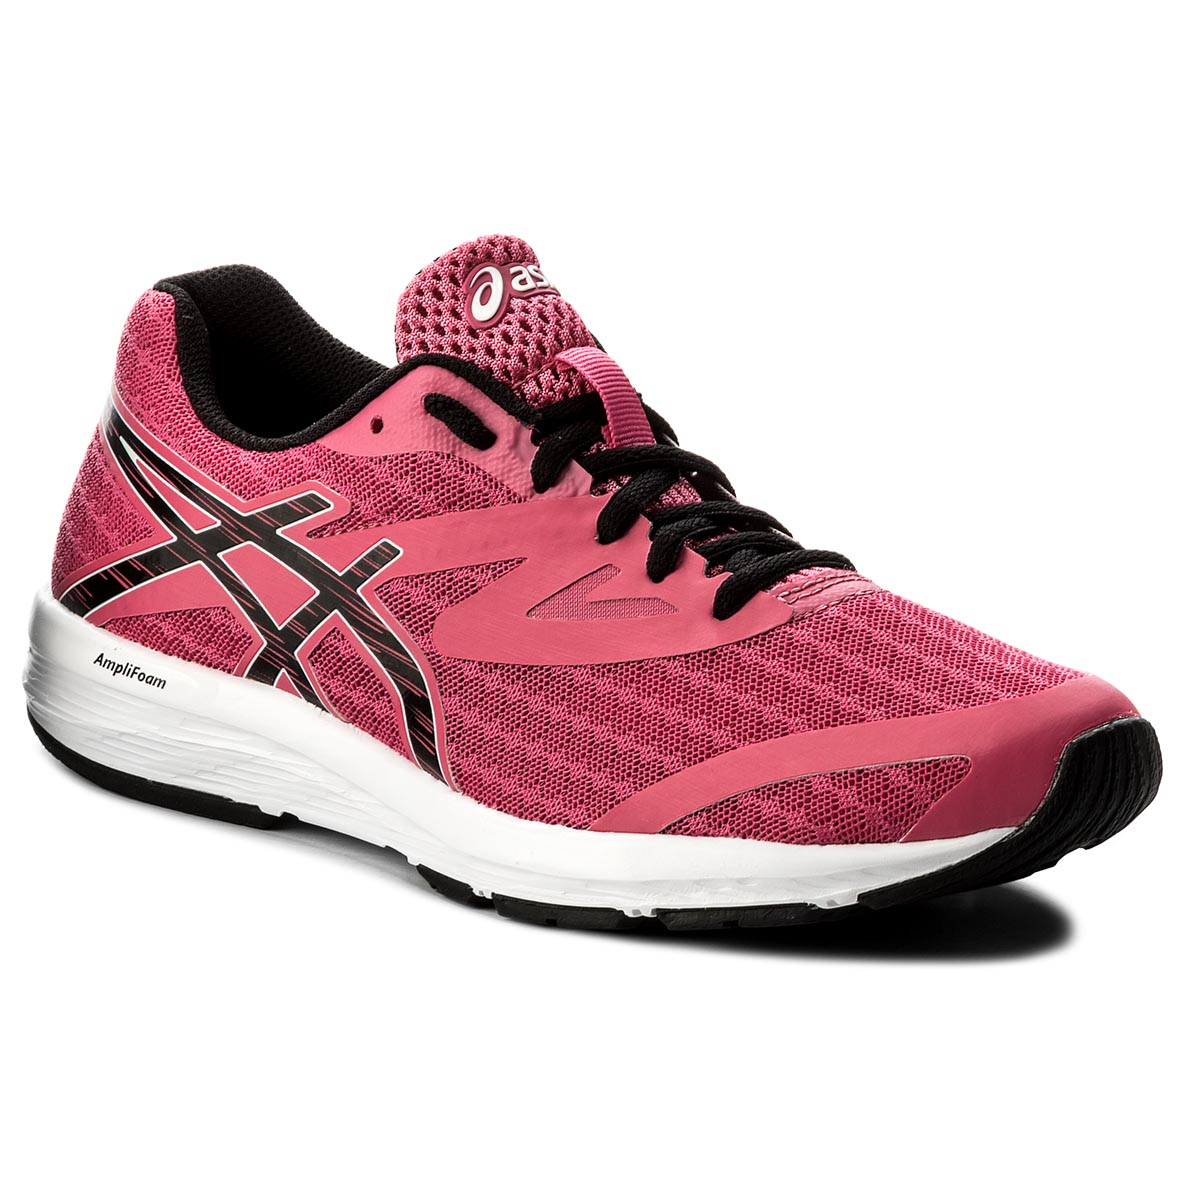 Buty ASICS - Amplica T875N Hot Pink/Black/White 2090